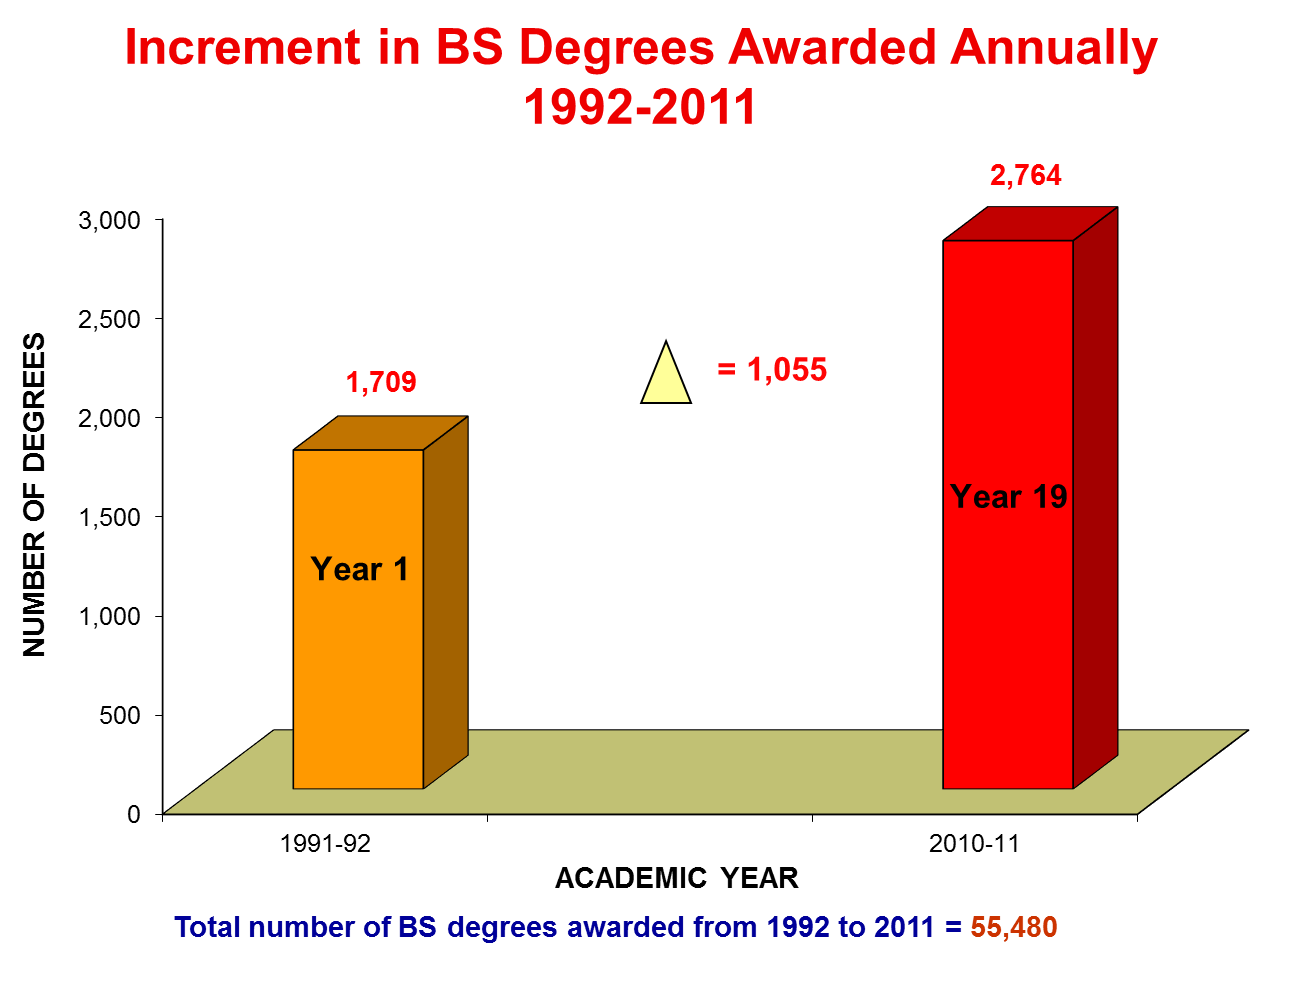 Increment in BS Degrees Awarded Annually